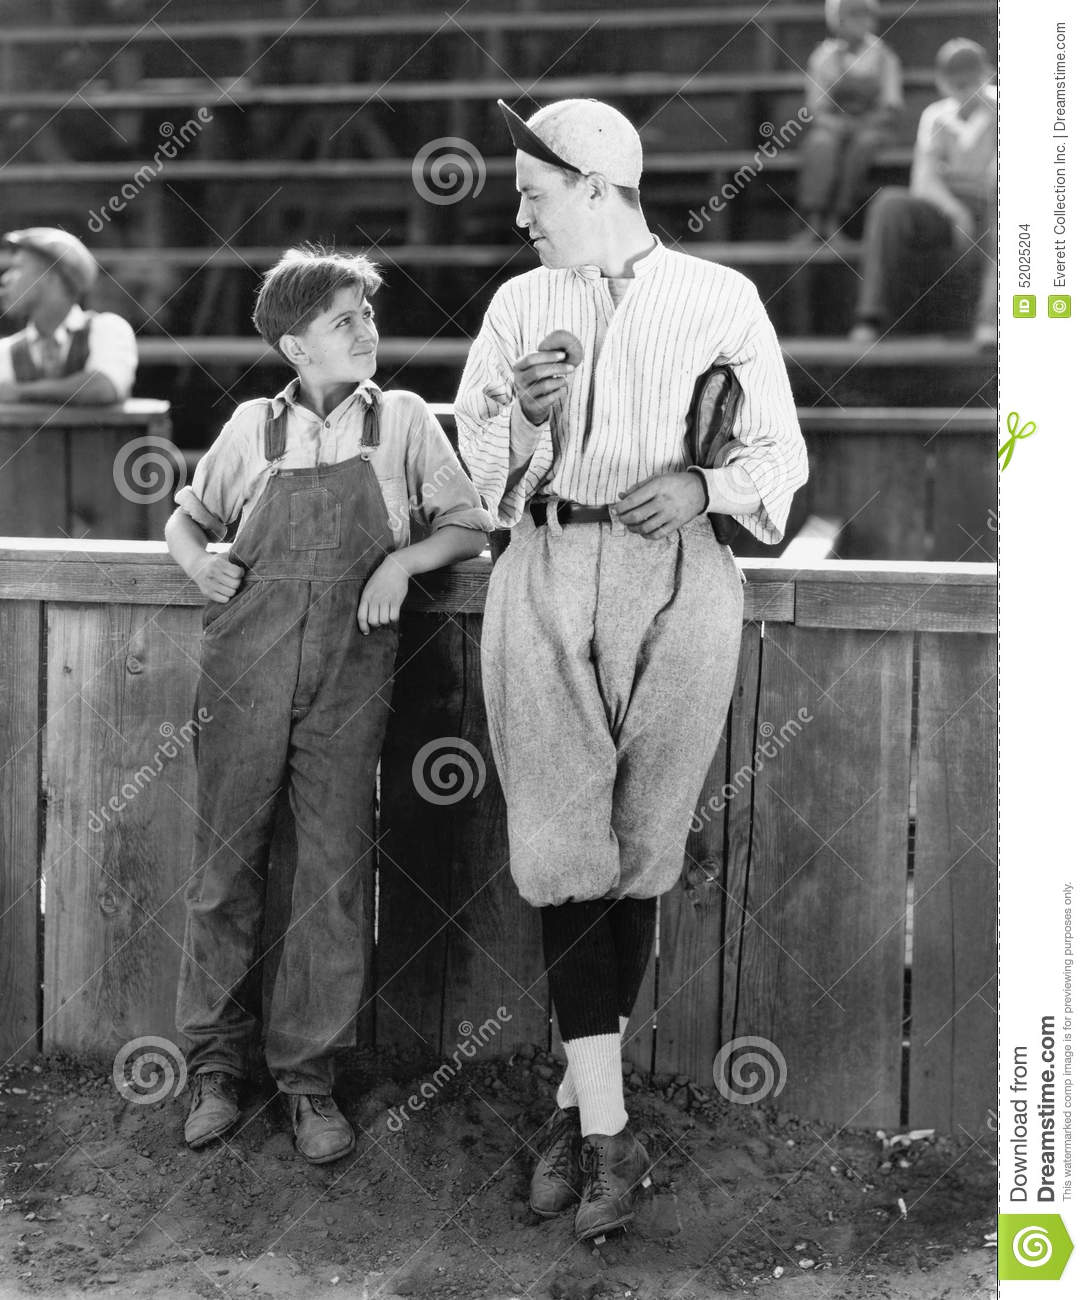 Father and son standing together on a baseball field